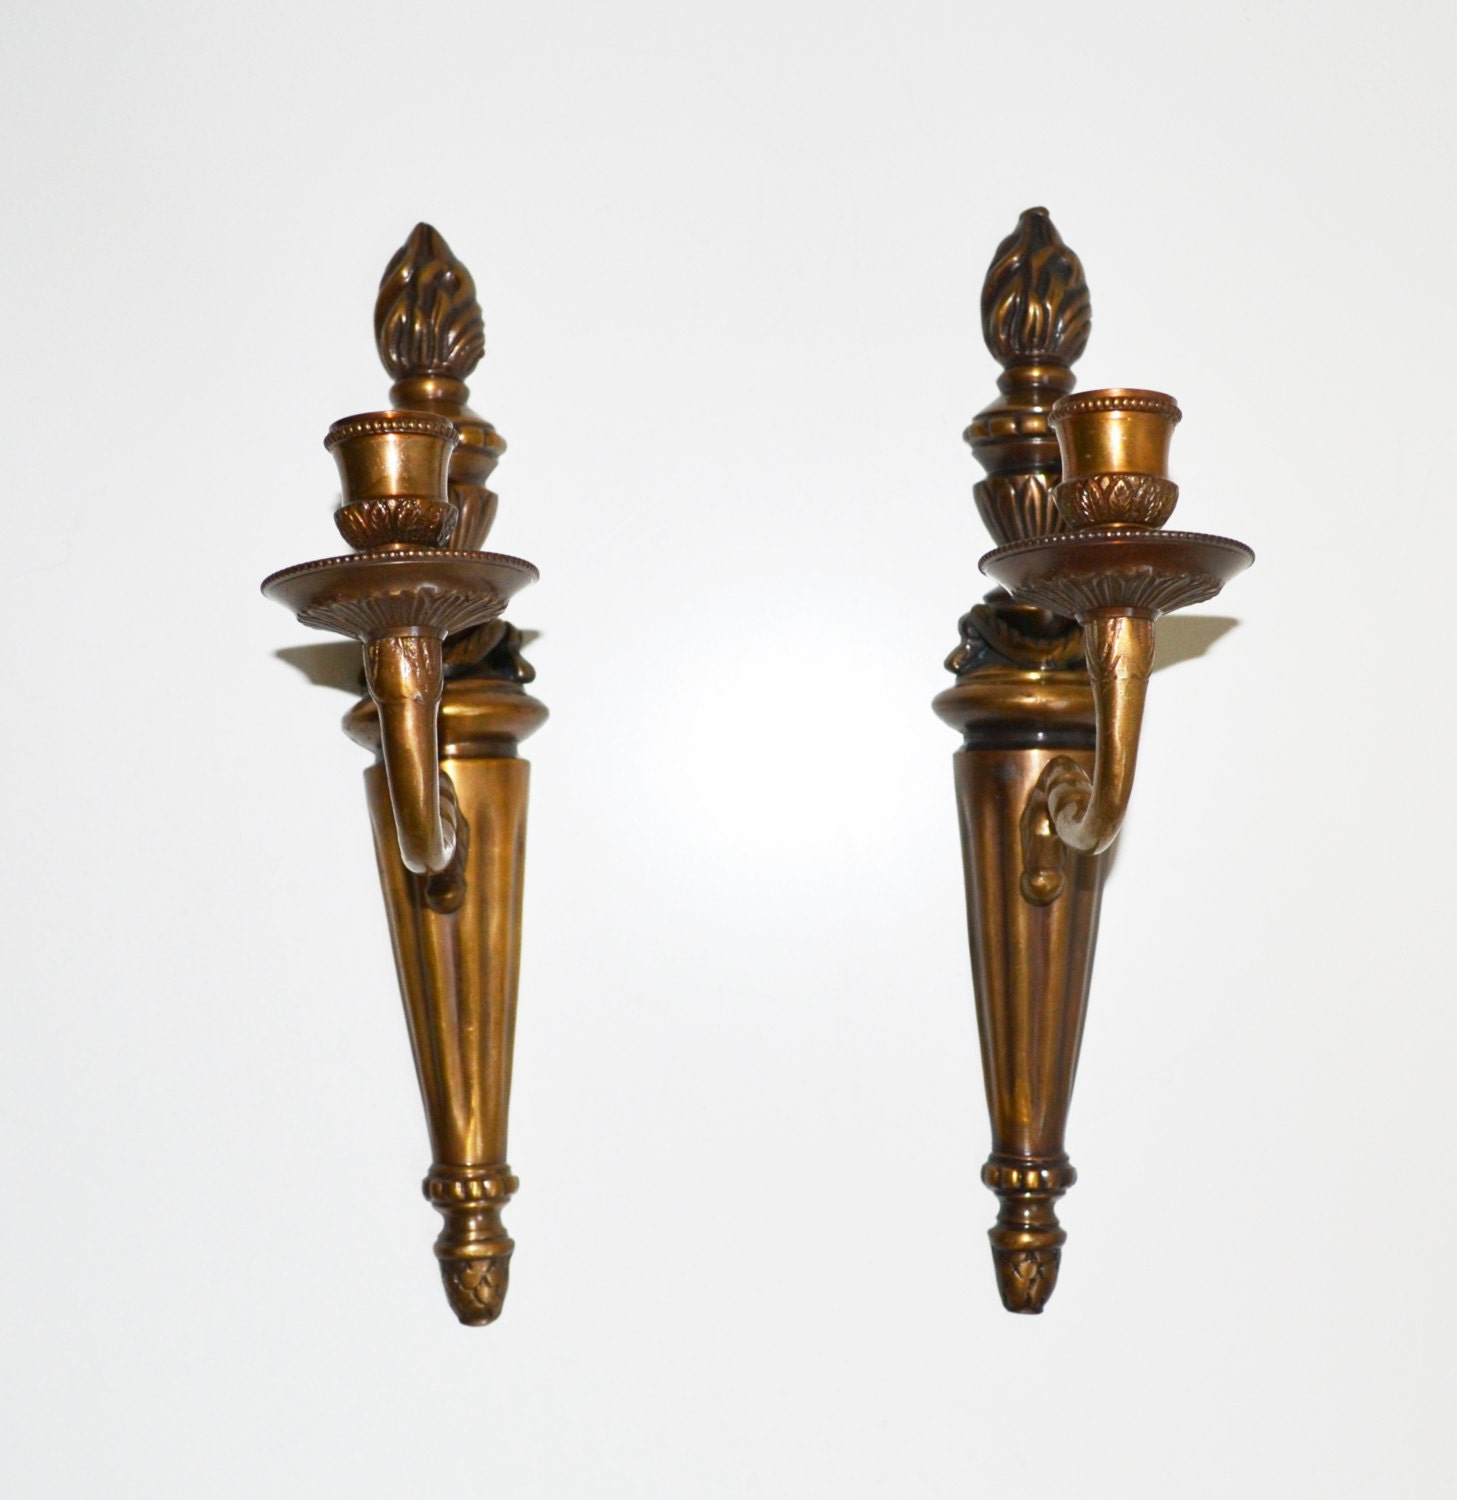 Candle Wall Sconces Vintage : Vintage Brass Candle Wall Sconces Candle Holders by JudysJunktion